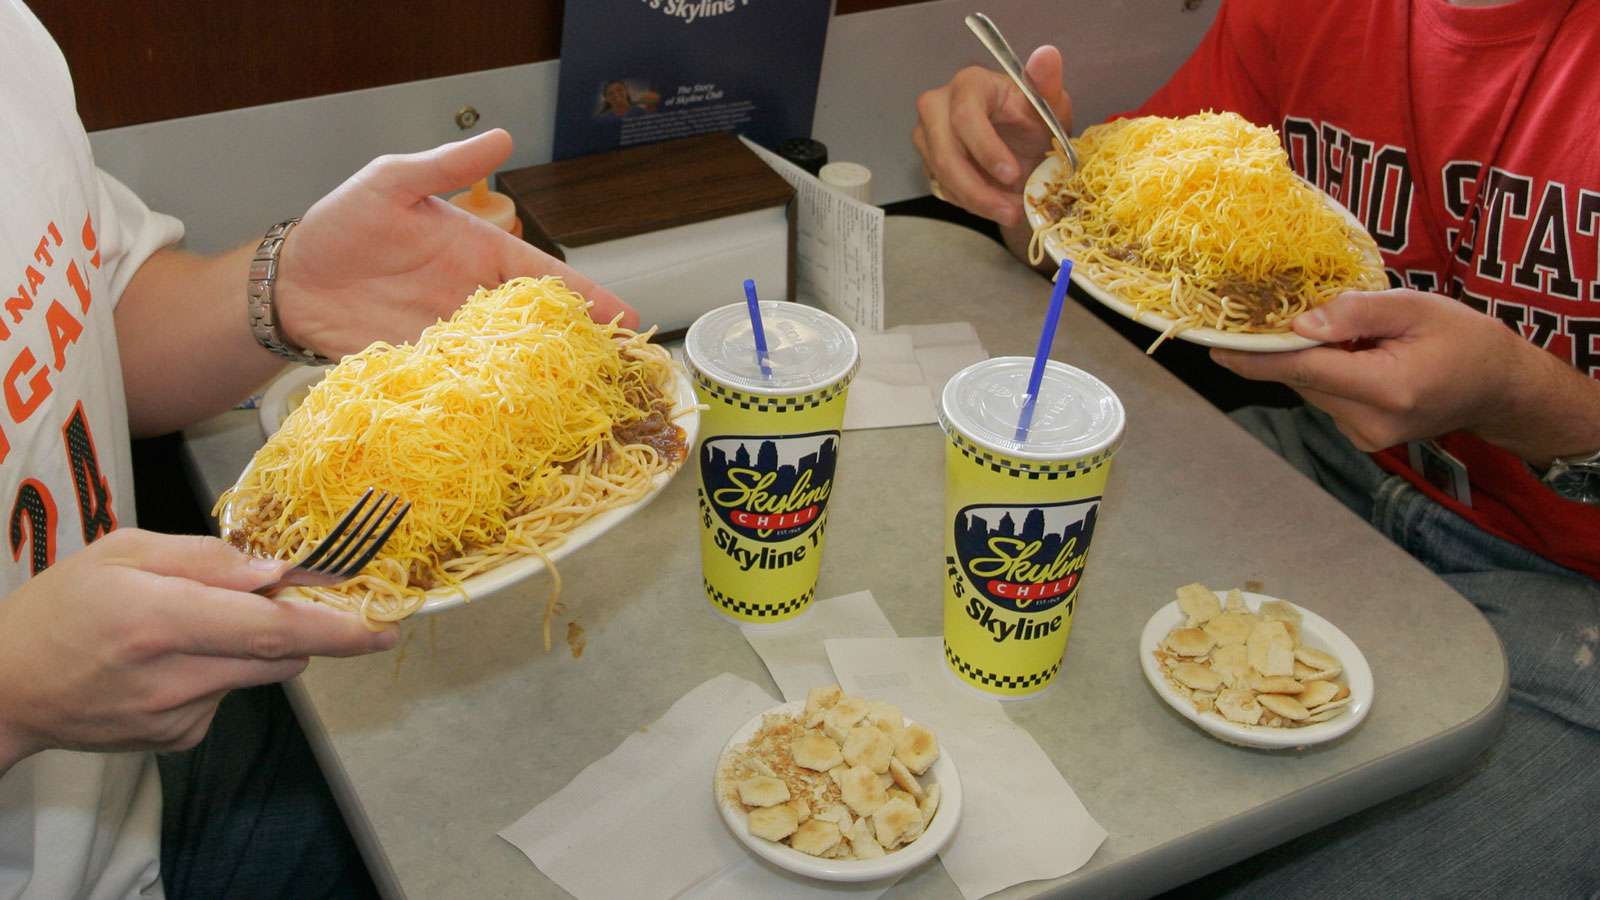 Skyline Chili, Explained by a Cincinnatian